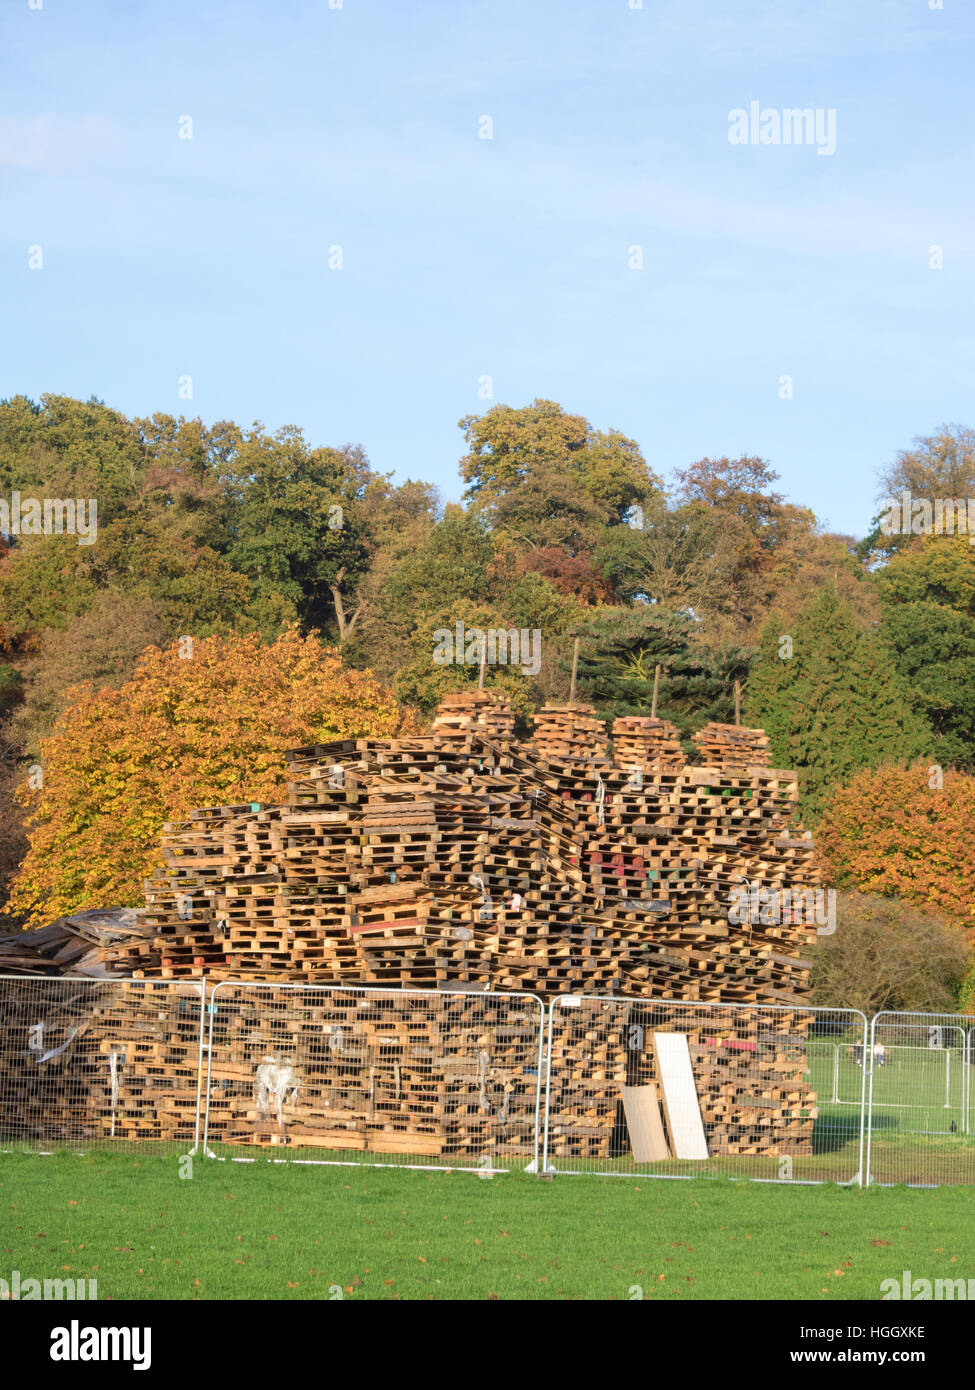 Pile of Wooden Pallets forming an Unlit Bonfire Pile, Himley Hall. Staffordshire, England, UK - Stock Image